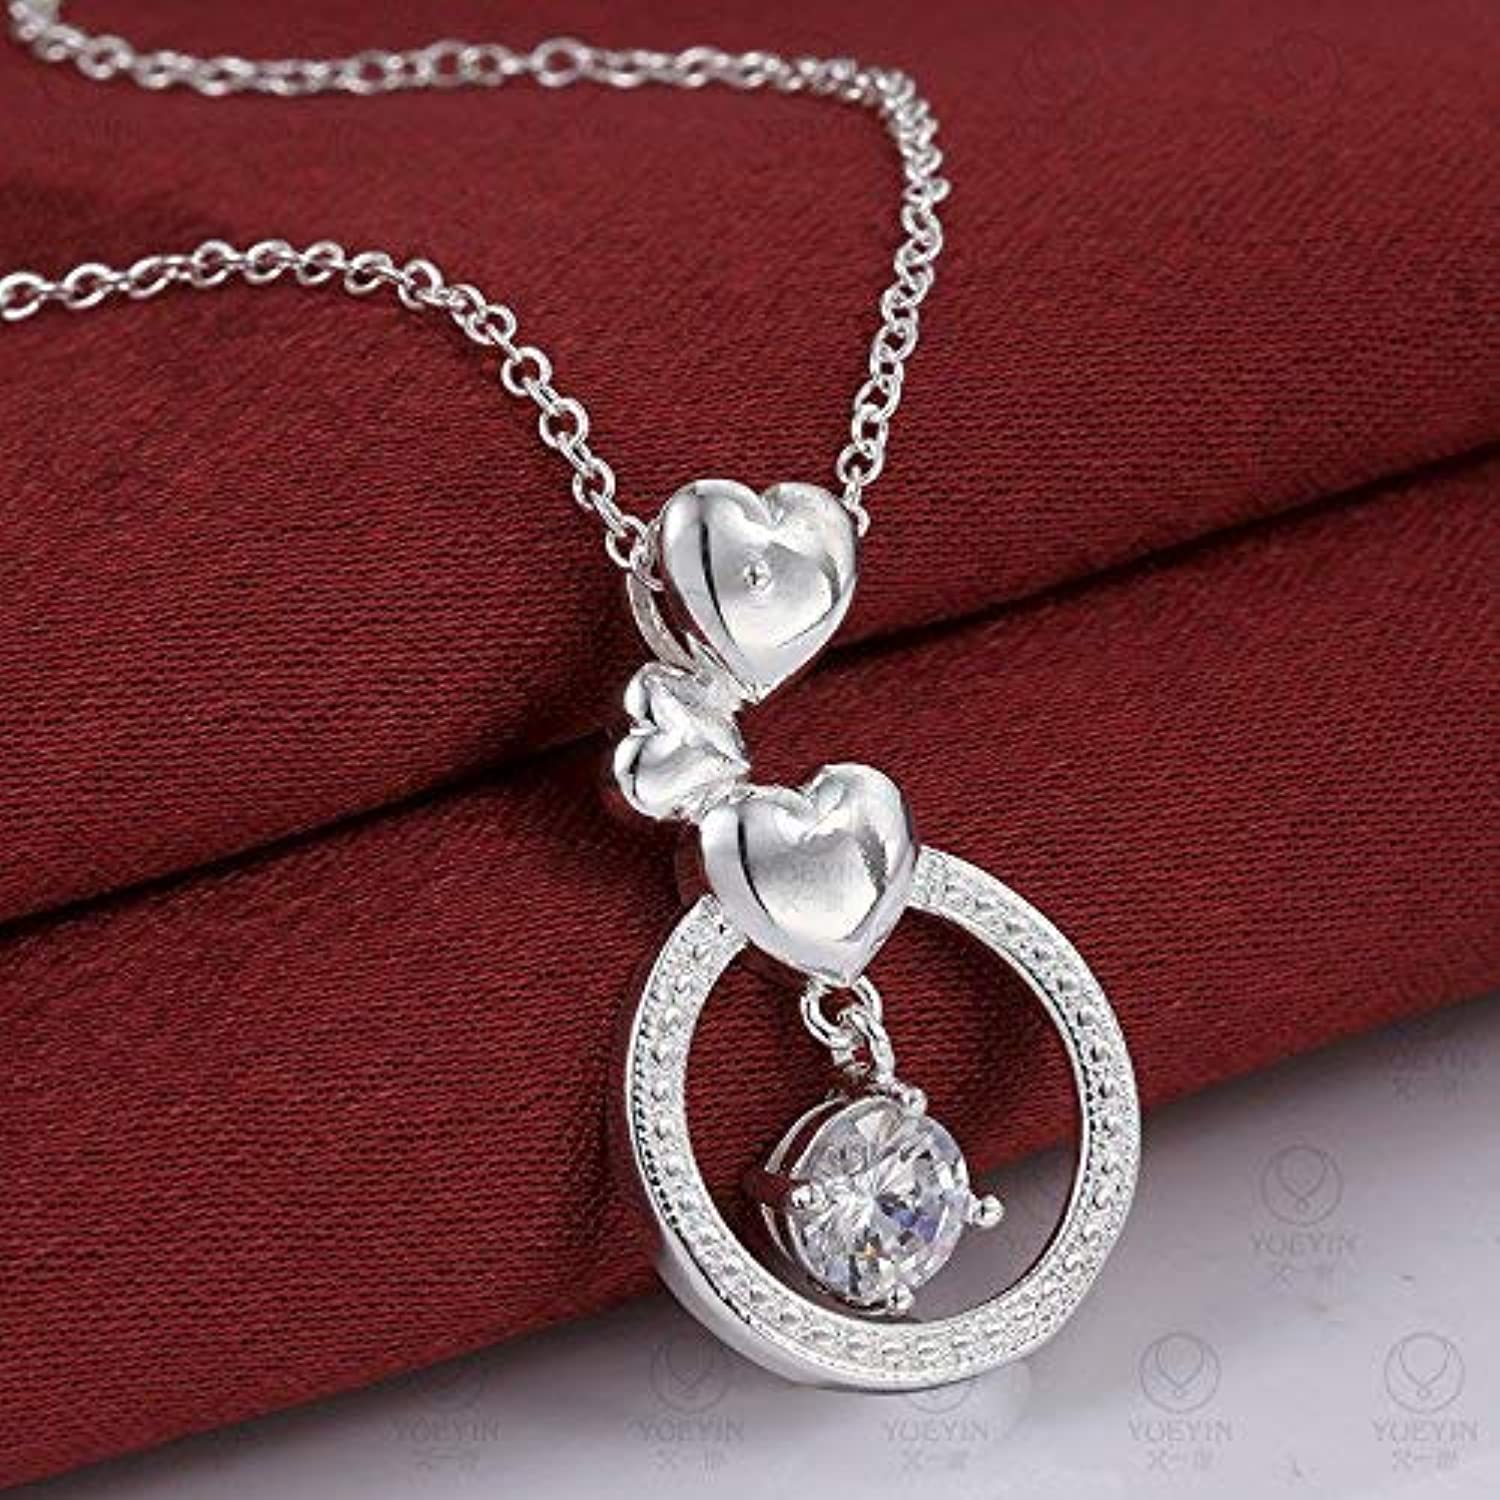 Rhinestone Necklace Creative OL Heart Shaped Diamond Necklace Fashion Silver Plated Jewelry by Enking